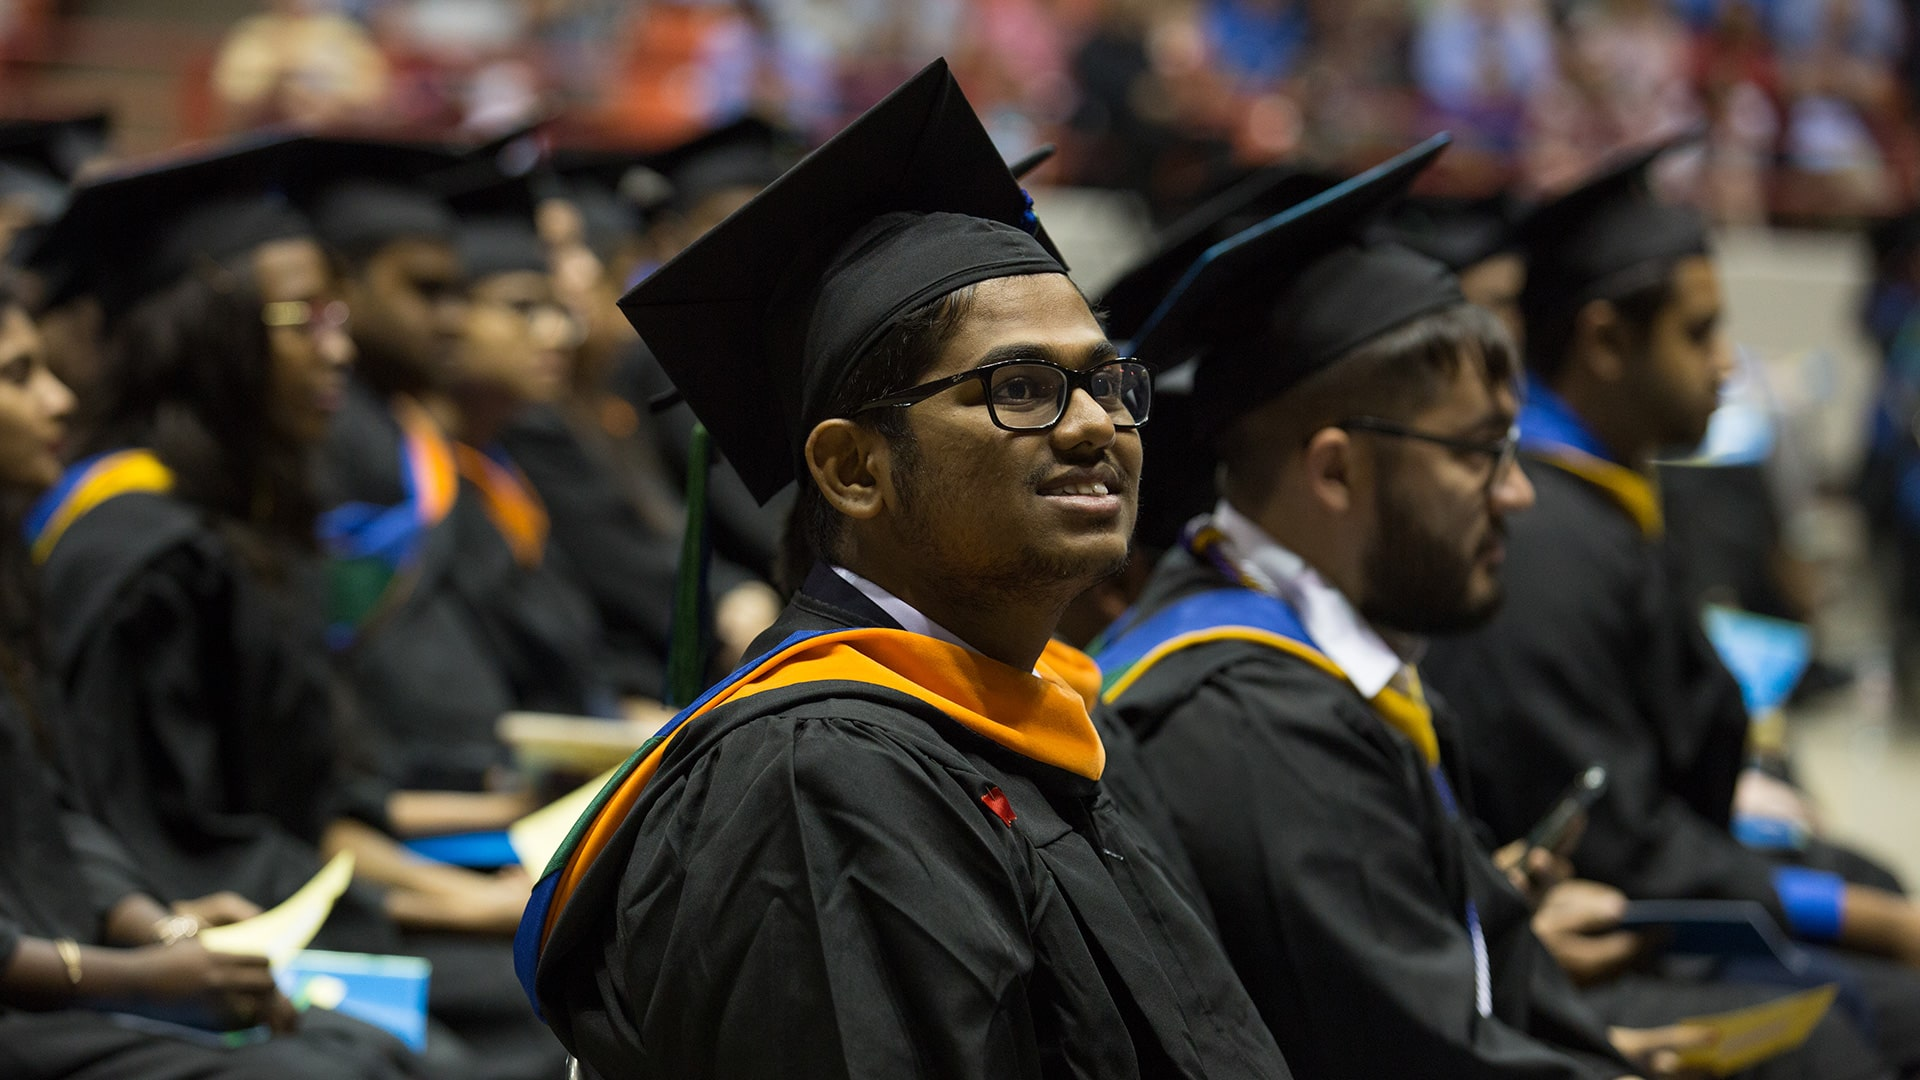 UHCL spring commencement ceremonies May 19 at NRG Arena